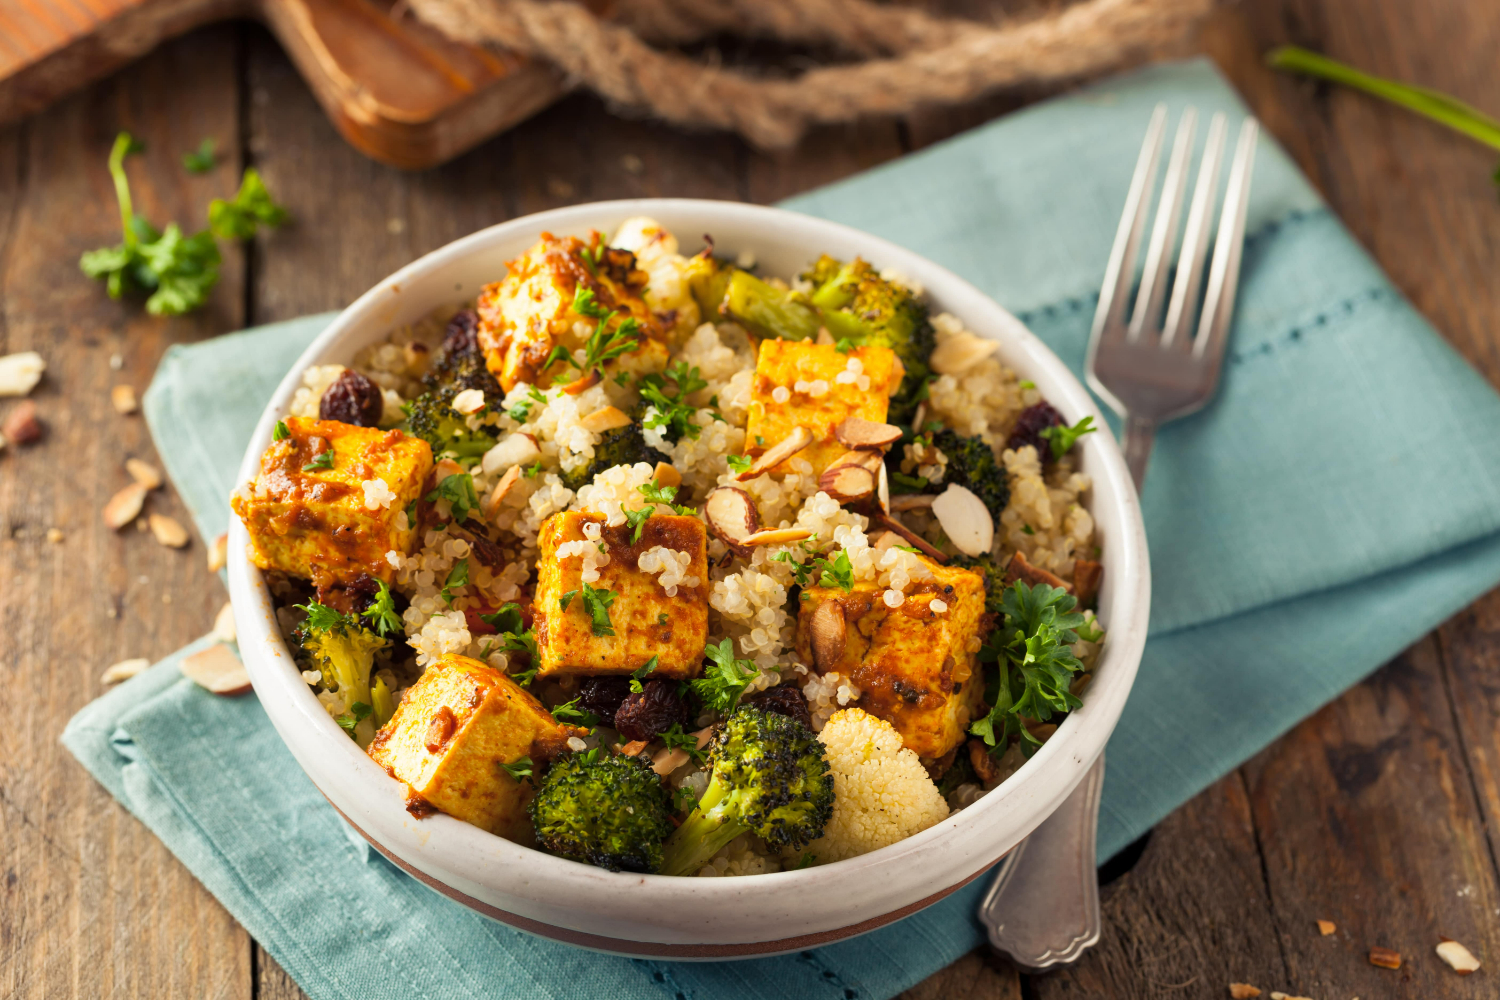 Couscous with Tofu and Vegetables